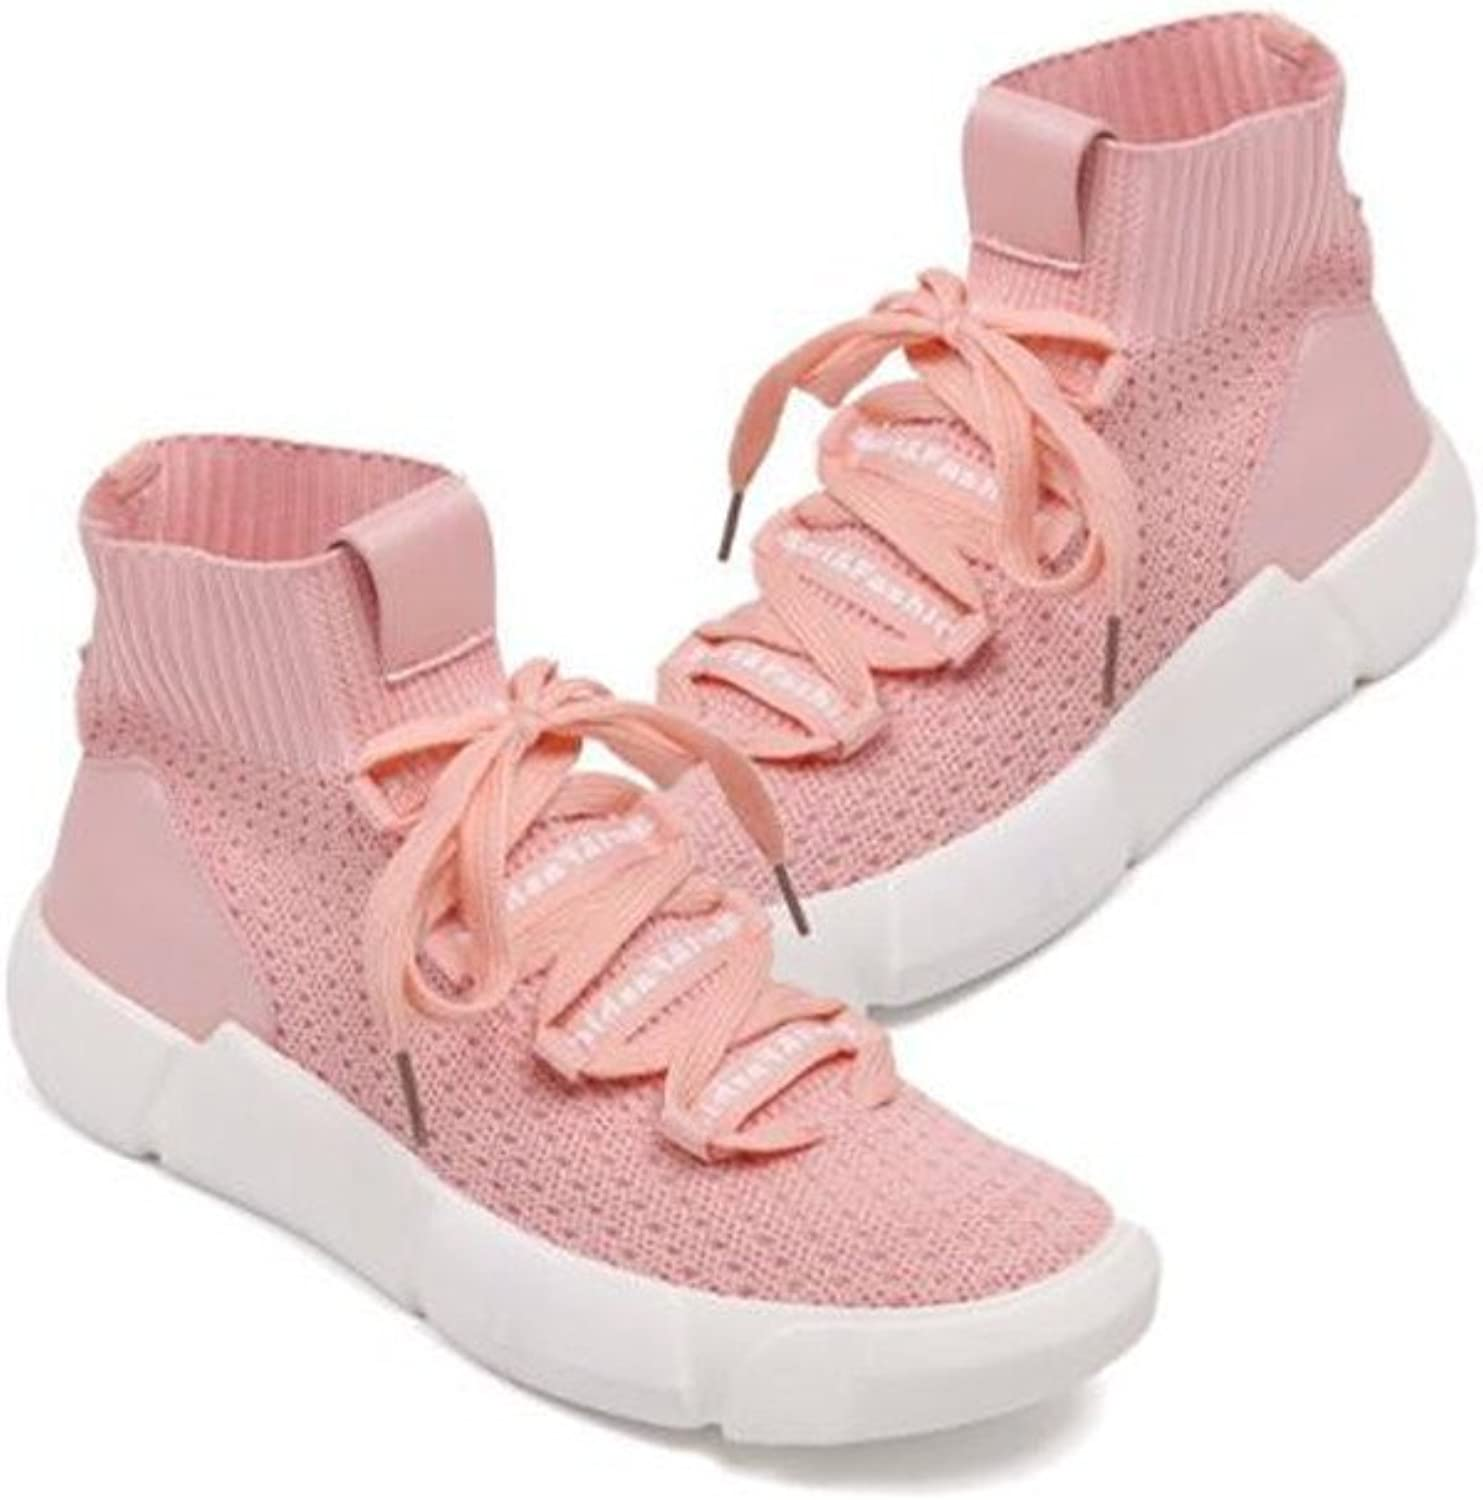 Edv0d2v266 Women's Couple Casual Retro Sneakers Breathable Athletic Sports shoes